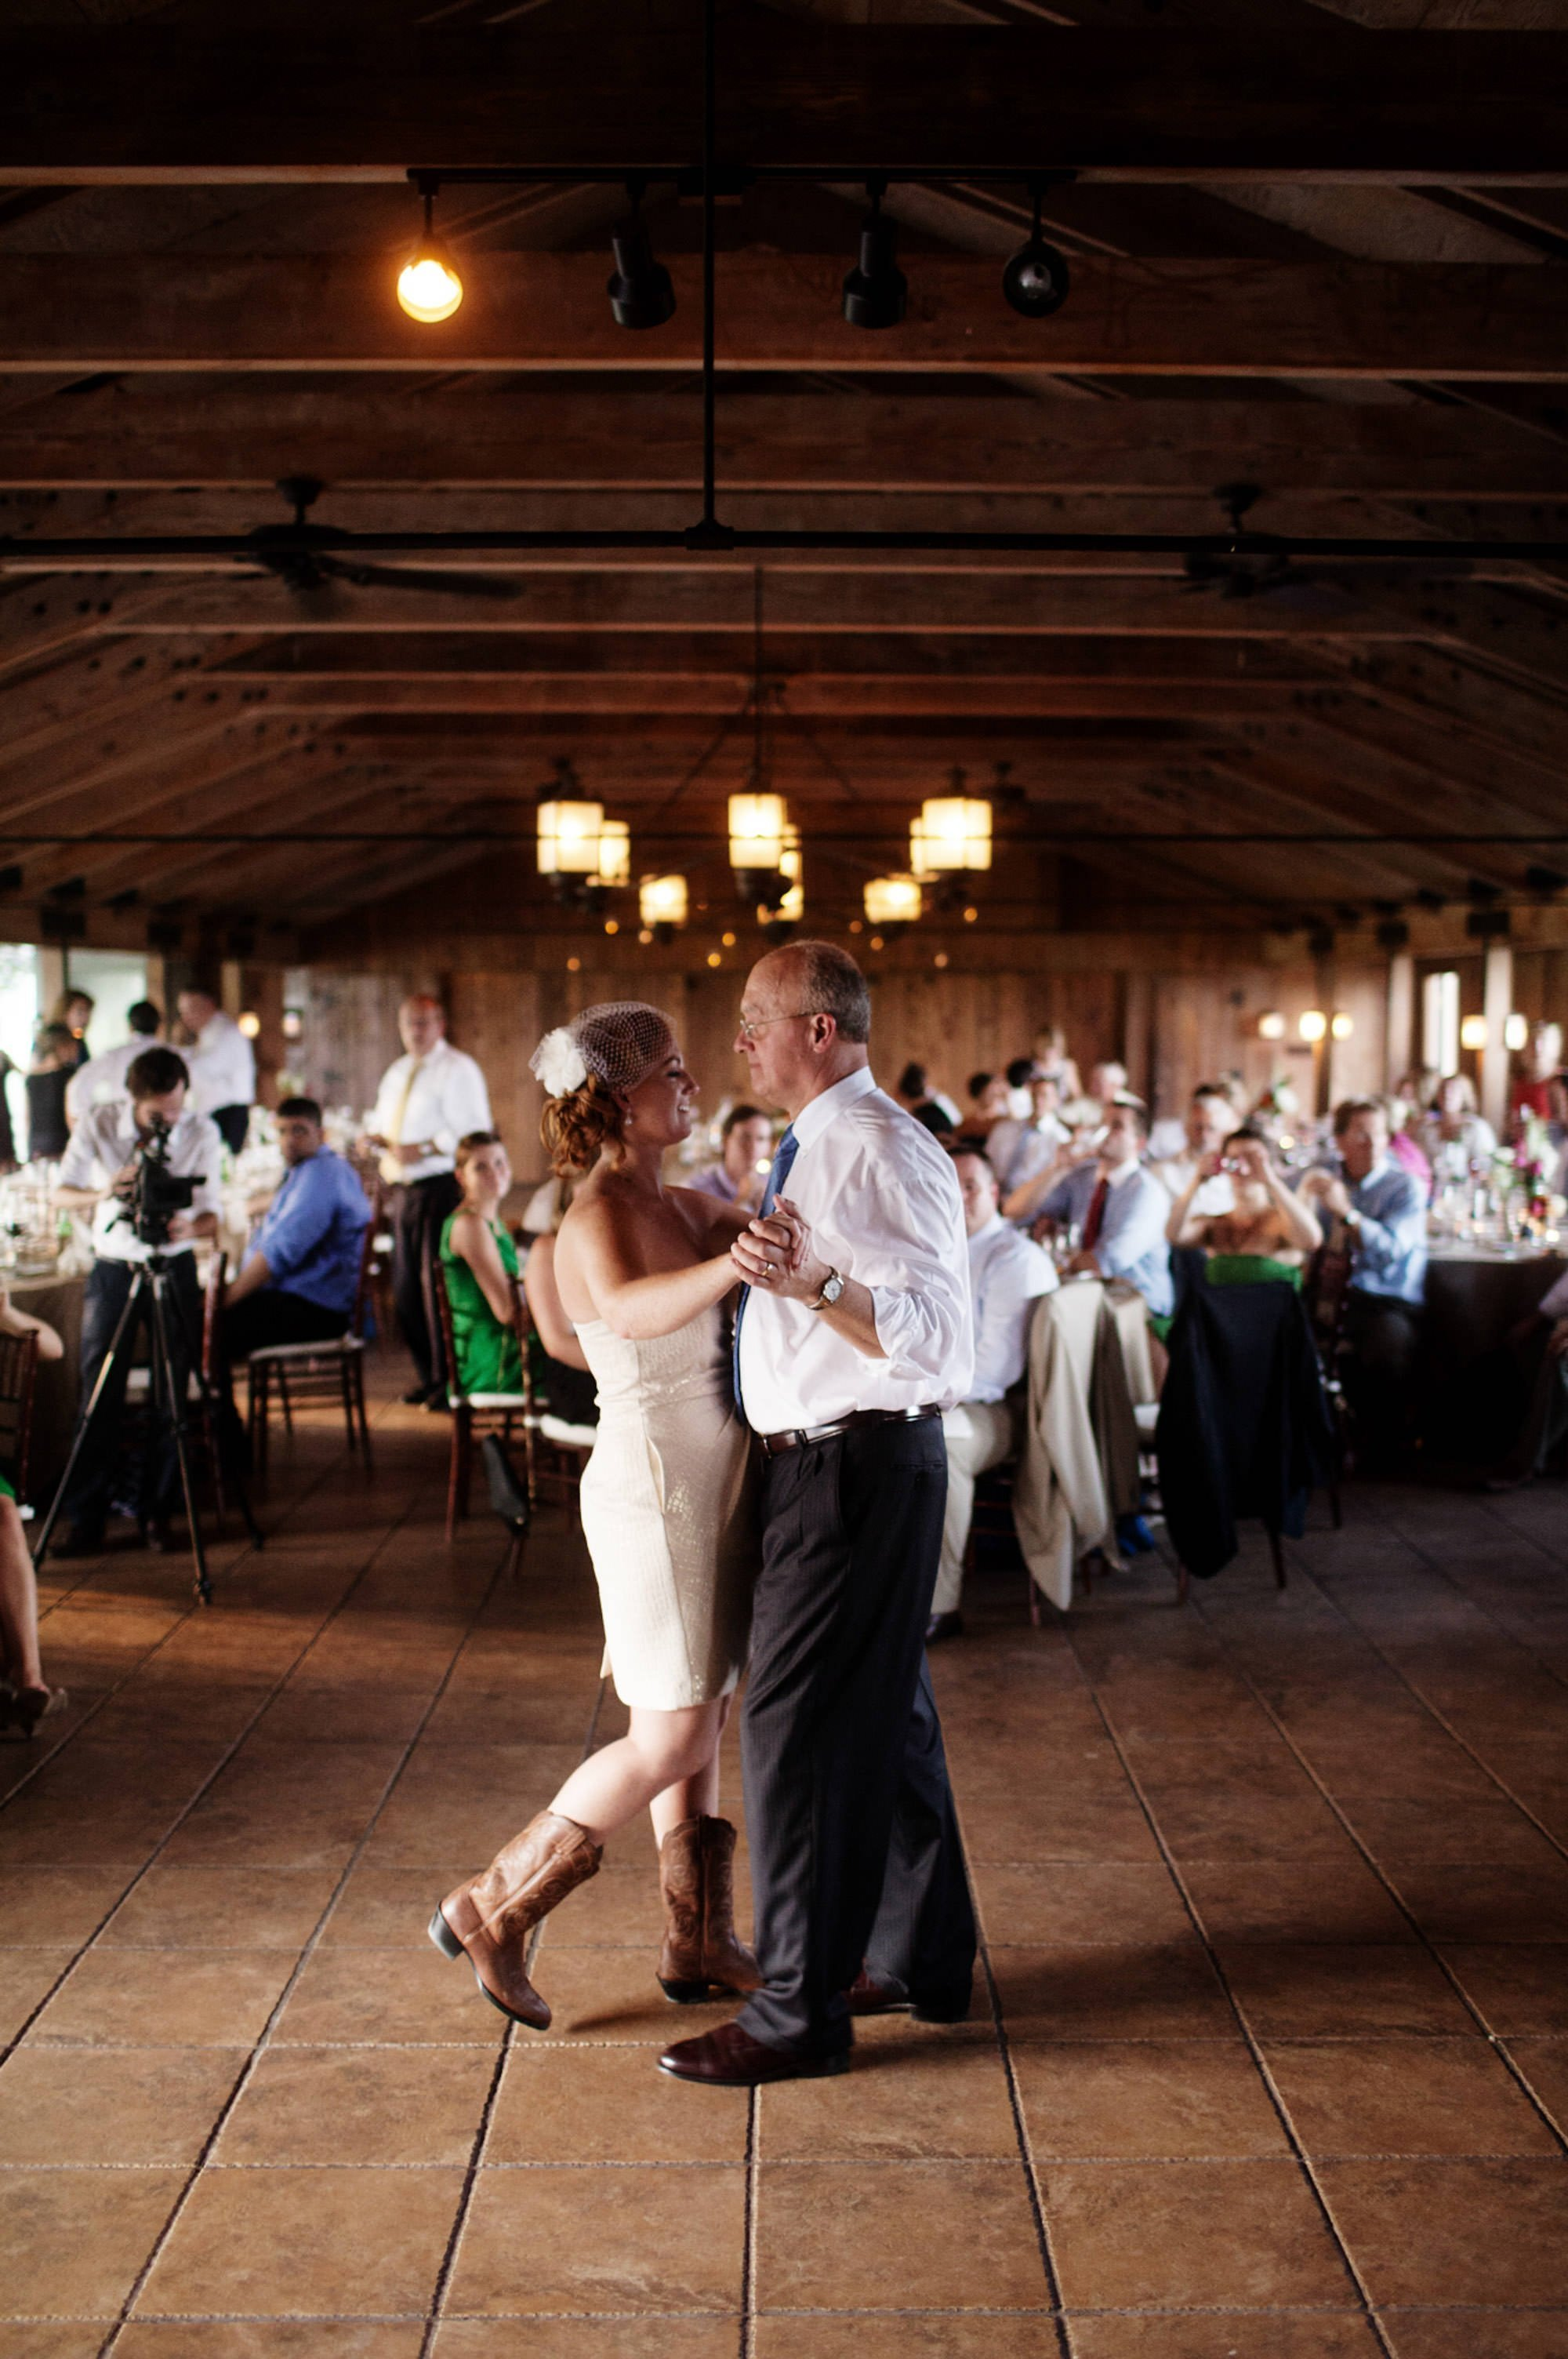 The bride dances with her father during the wedding reception at Marriott Ranch.